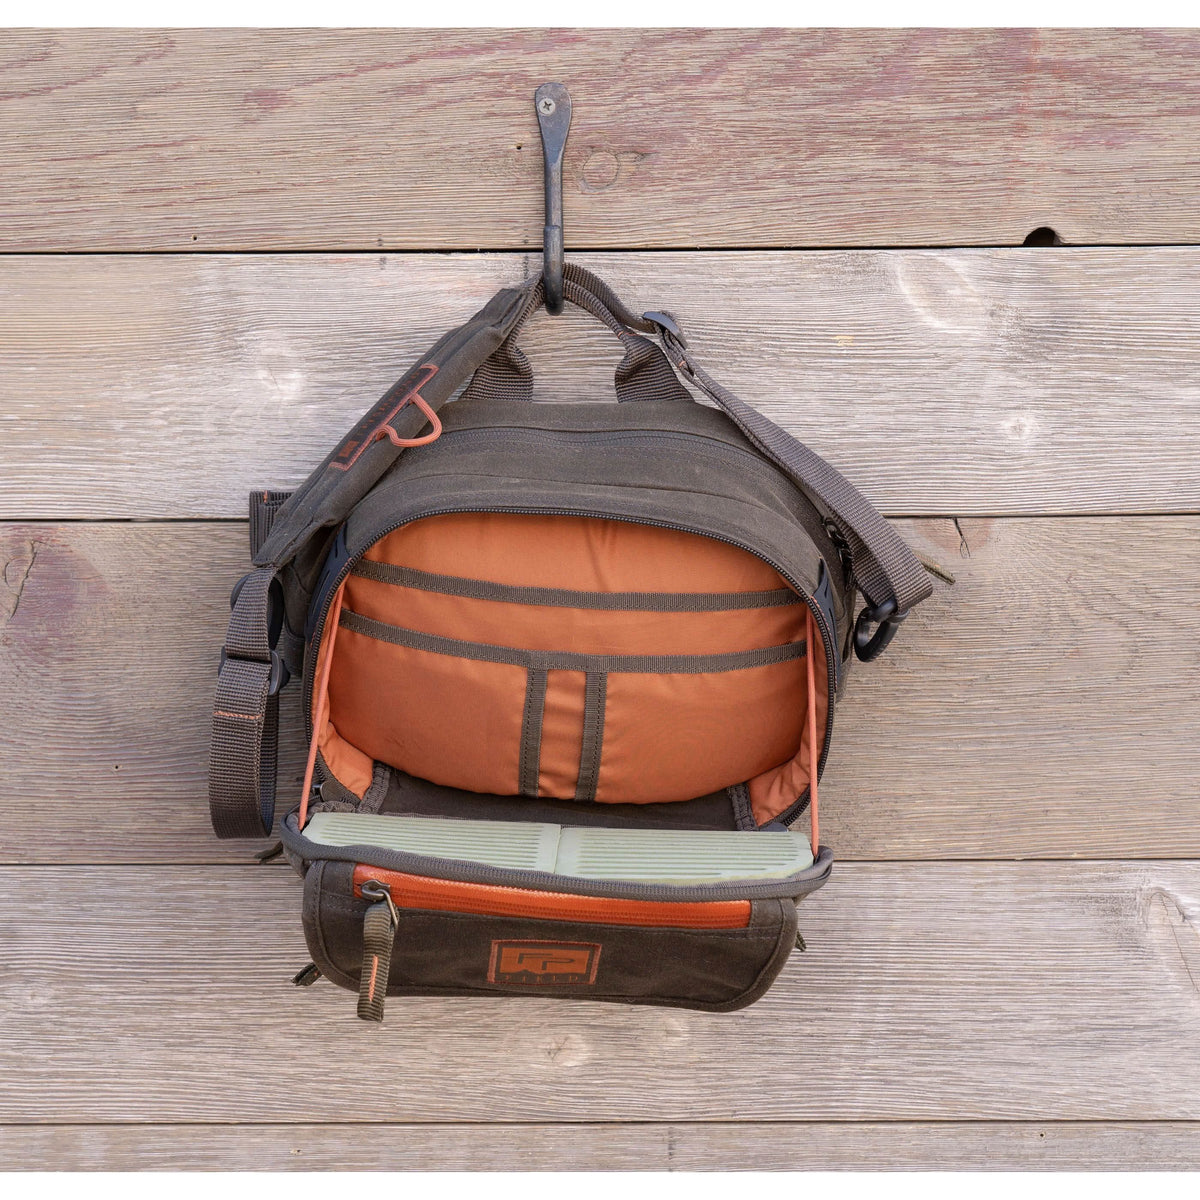 fishpond blue river peat moss lumbar pack chest pack waxed canvas fishing bag open